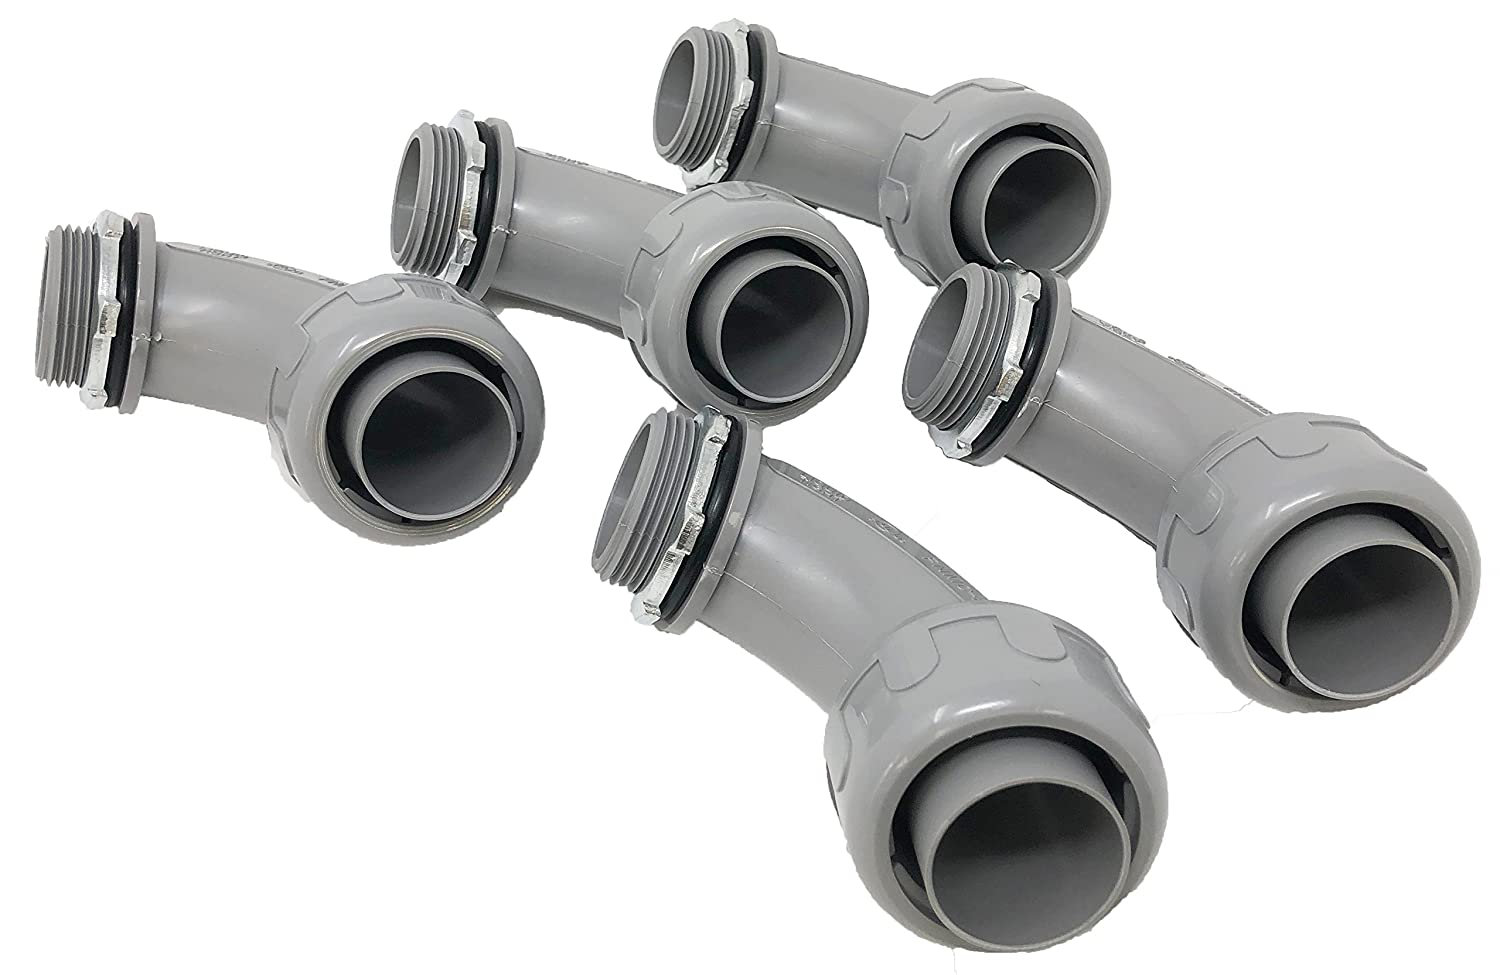 """Sealproof 1-1/4-Inch 5 Pack Non-Metallic Liquid-Tight 90-Degree Conduit Connector Fitting, 1-1/4"""" Dia 5-Pack"""